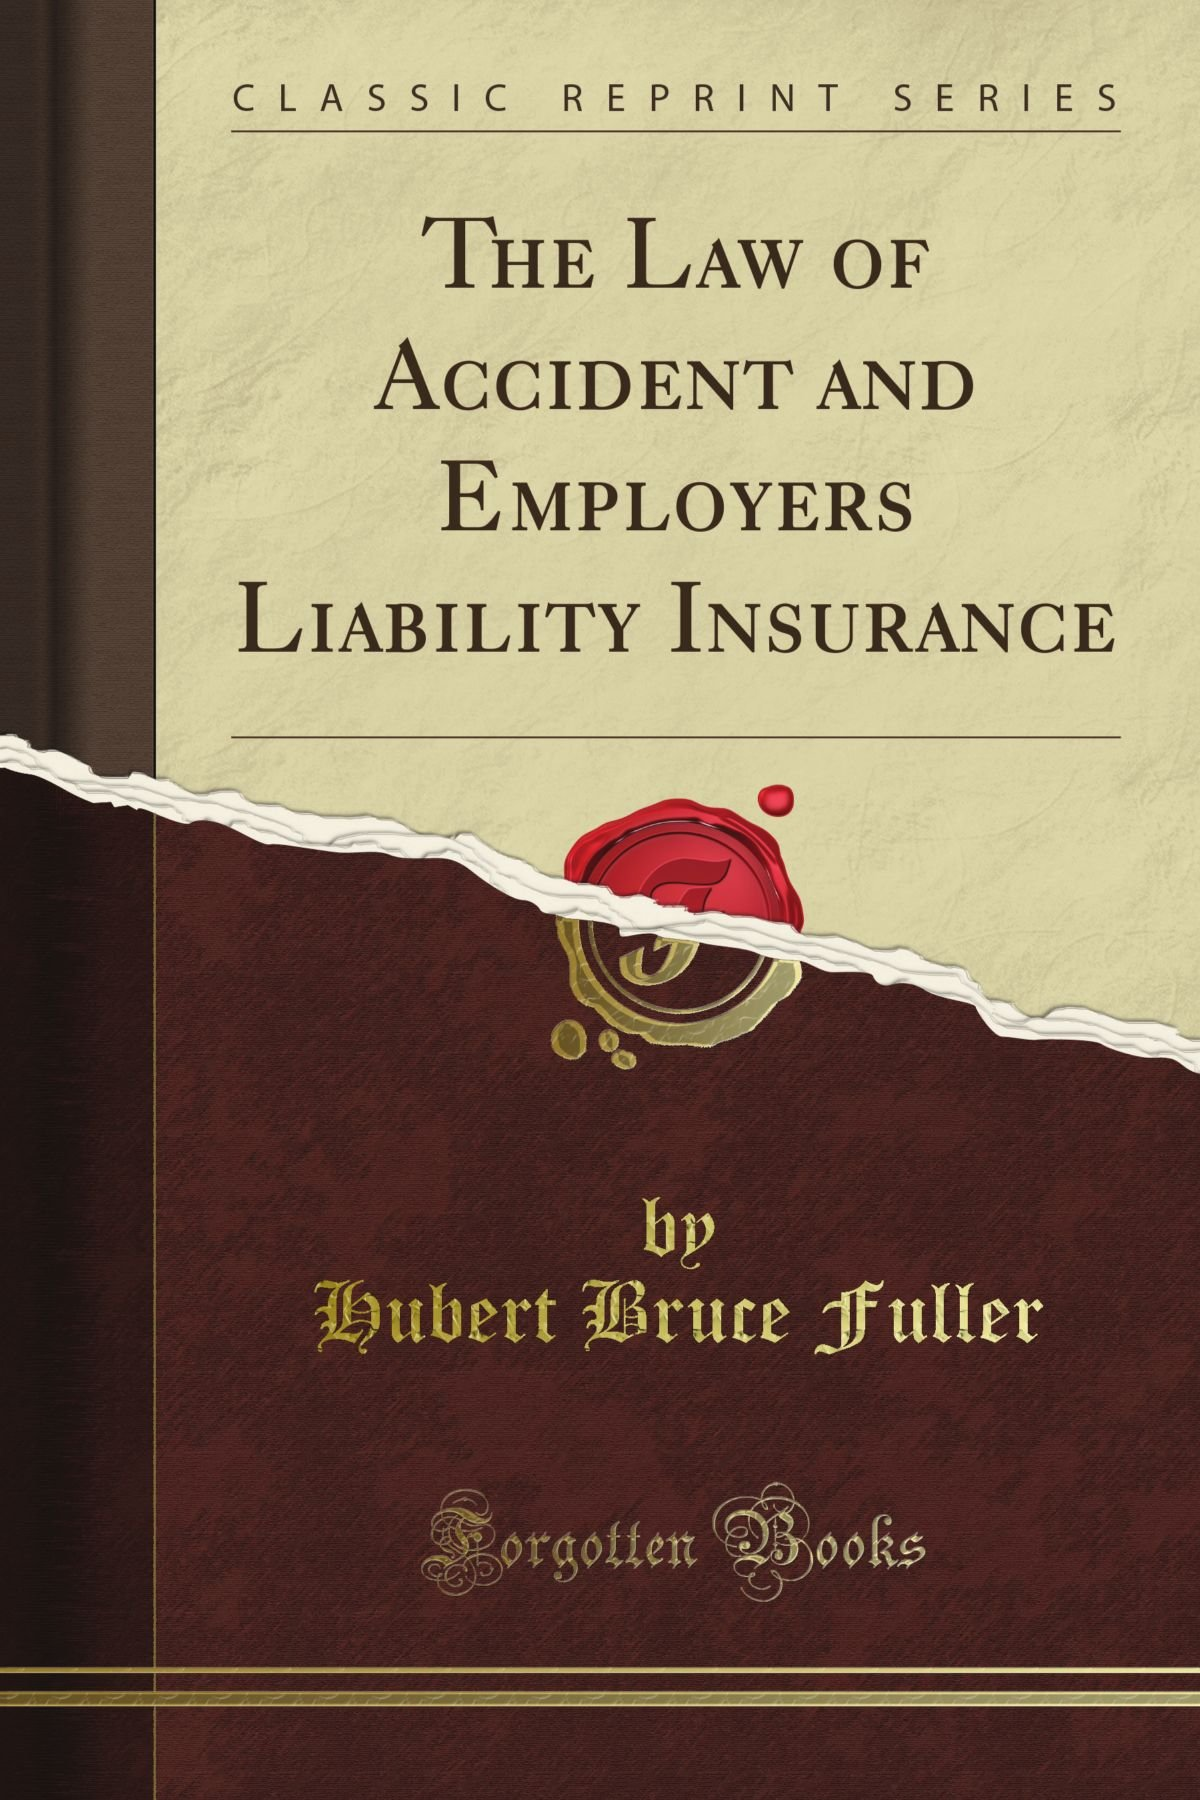 The Law of Accident and Employer's Liability Insurance (Classic Reprint)